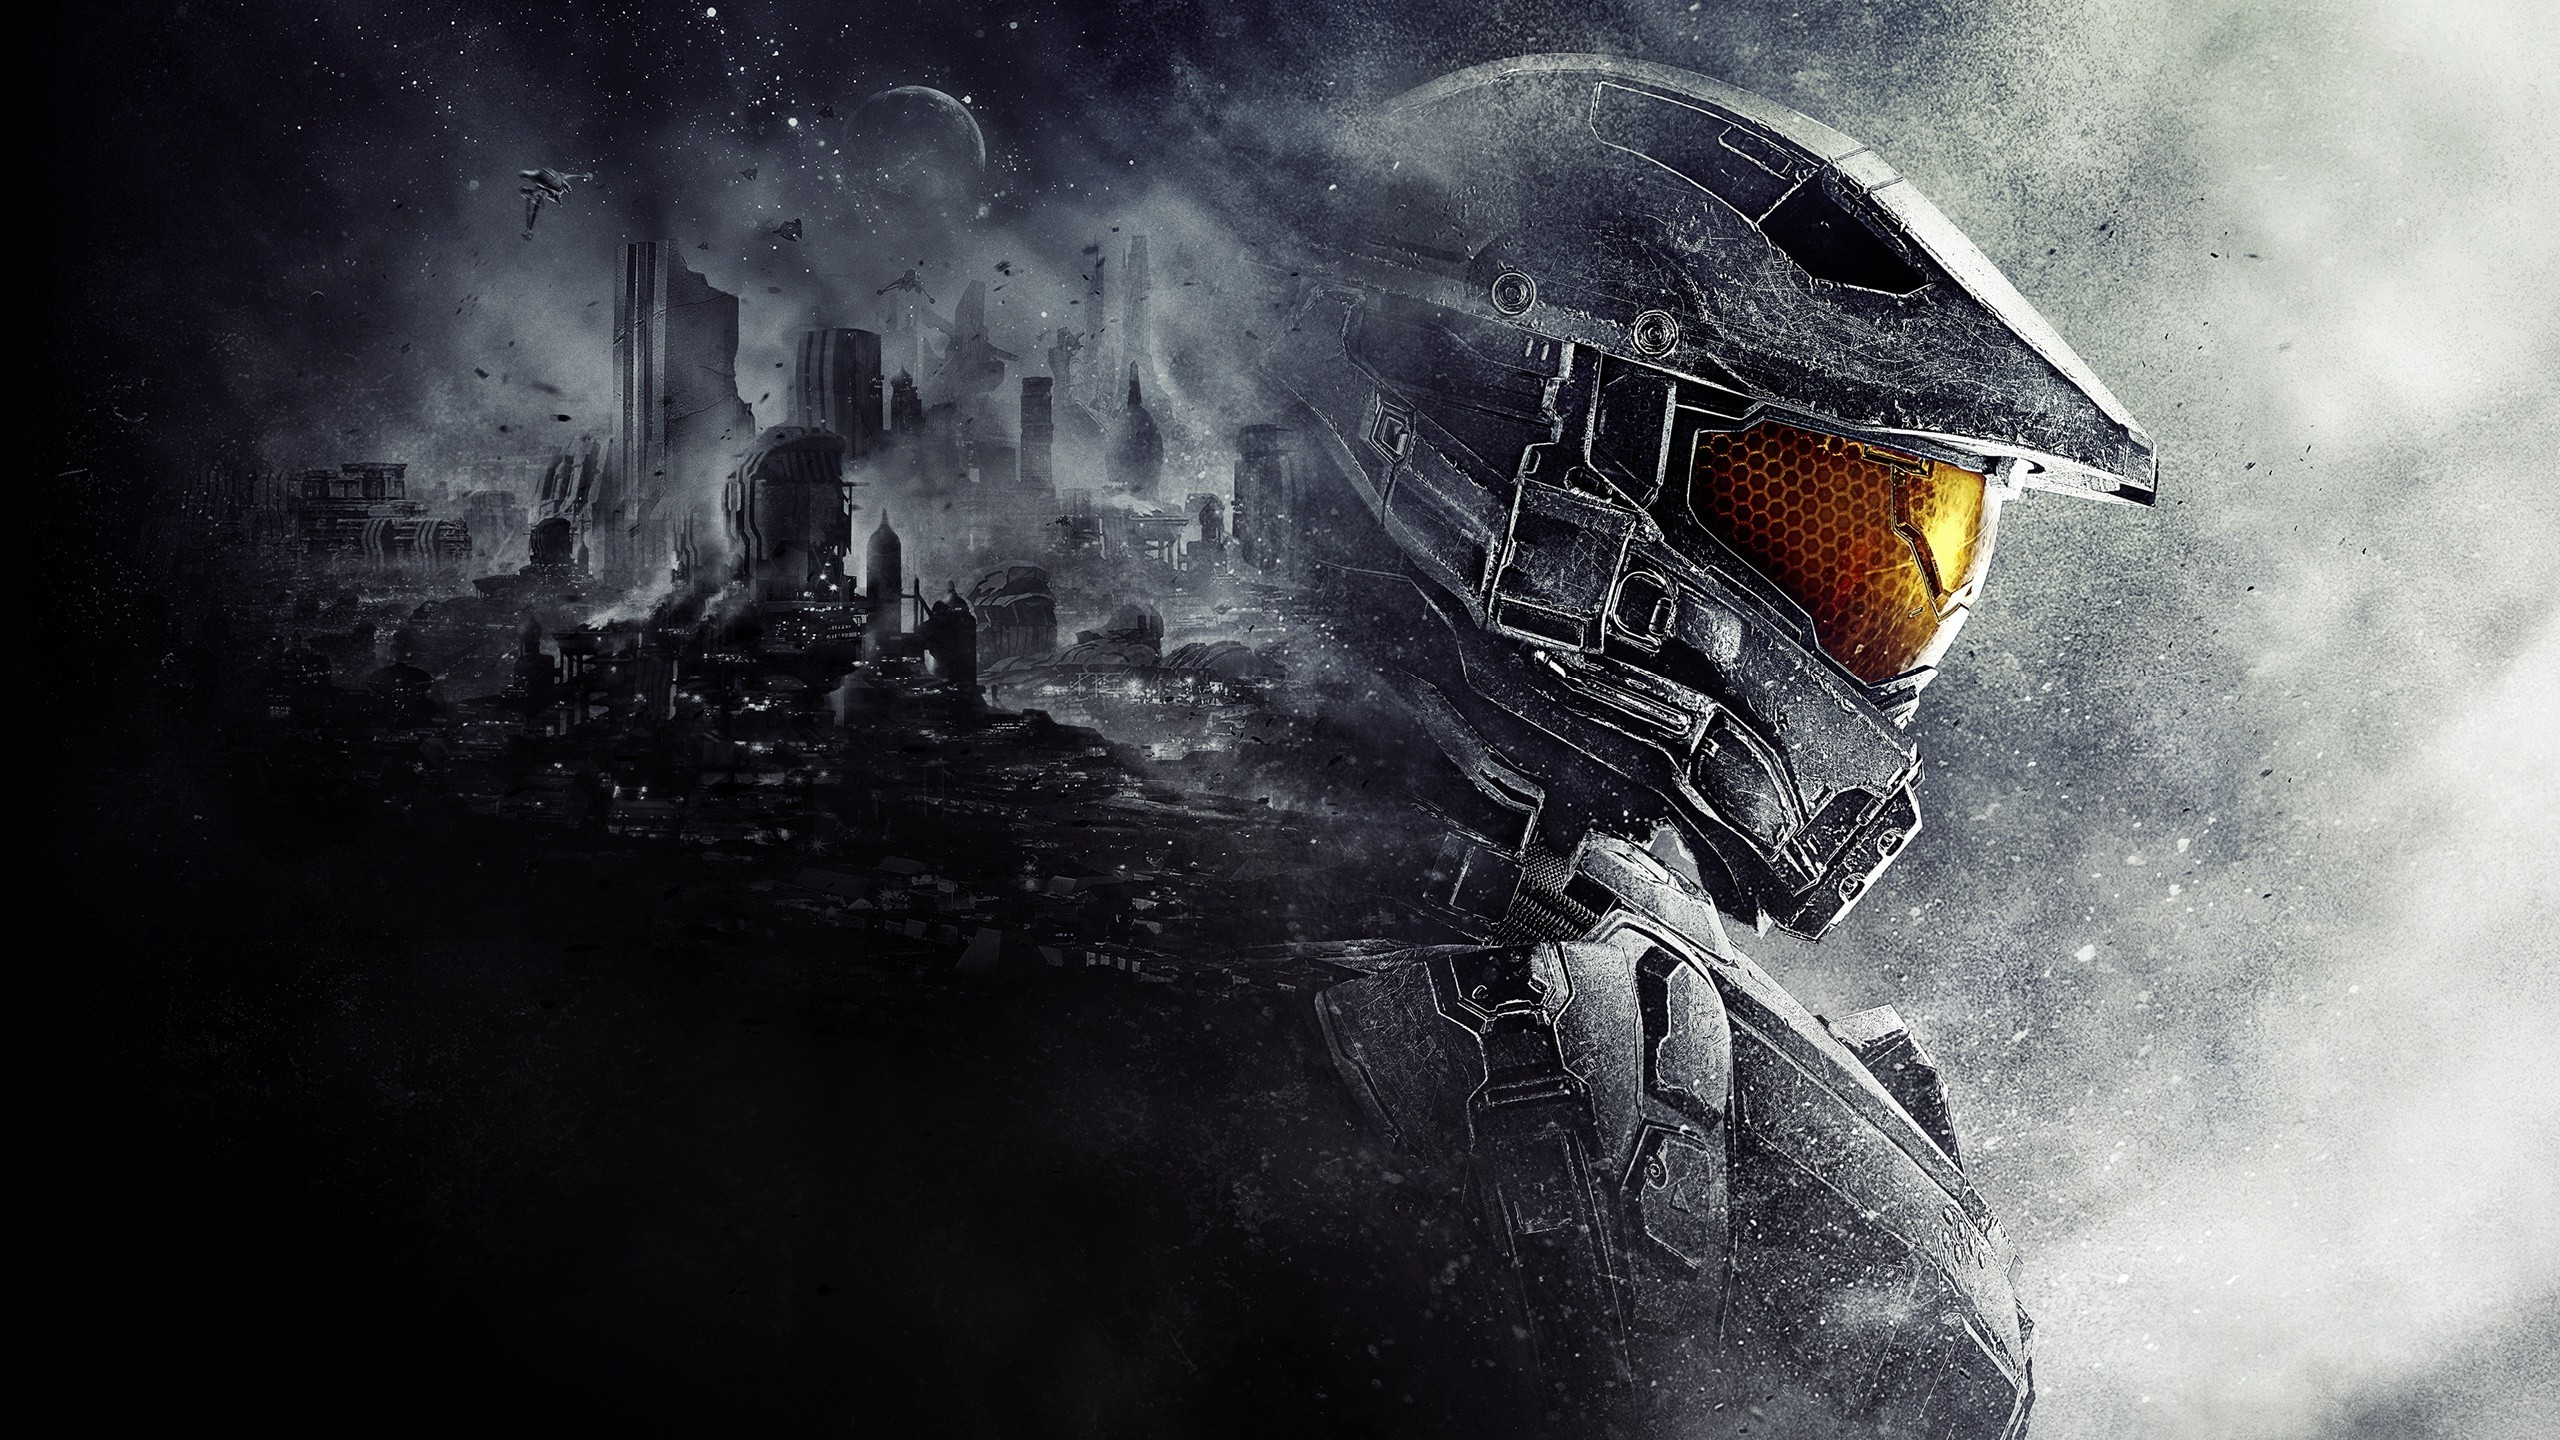 Halo 5, Master Chief, Halo, 343 Industries, Video Games Wallpapers HD /  Desktop and Mobile Backgrounds